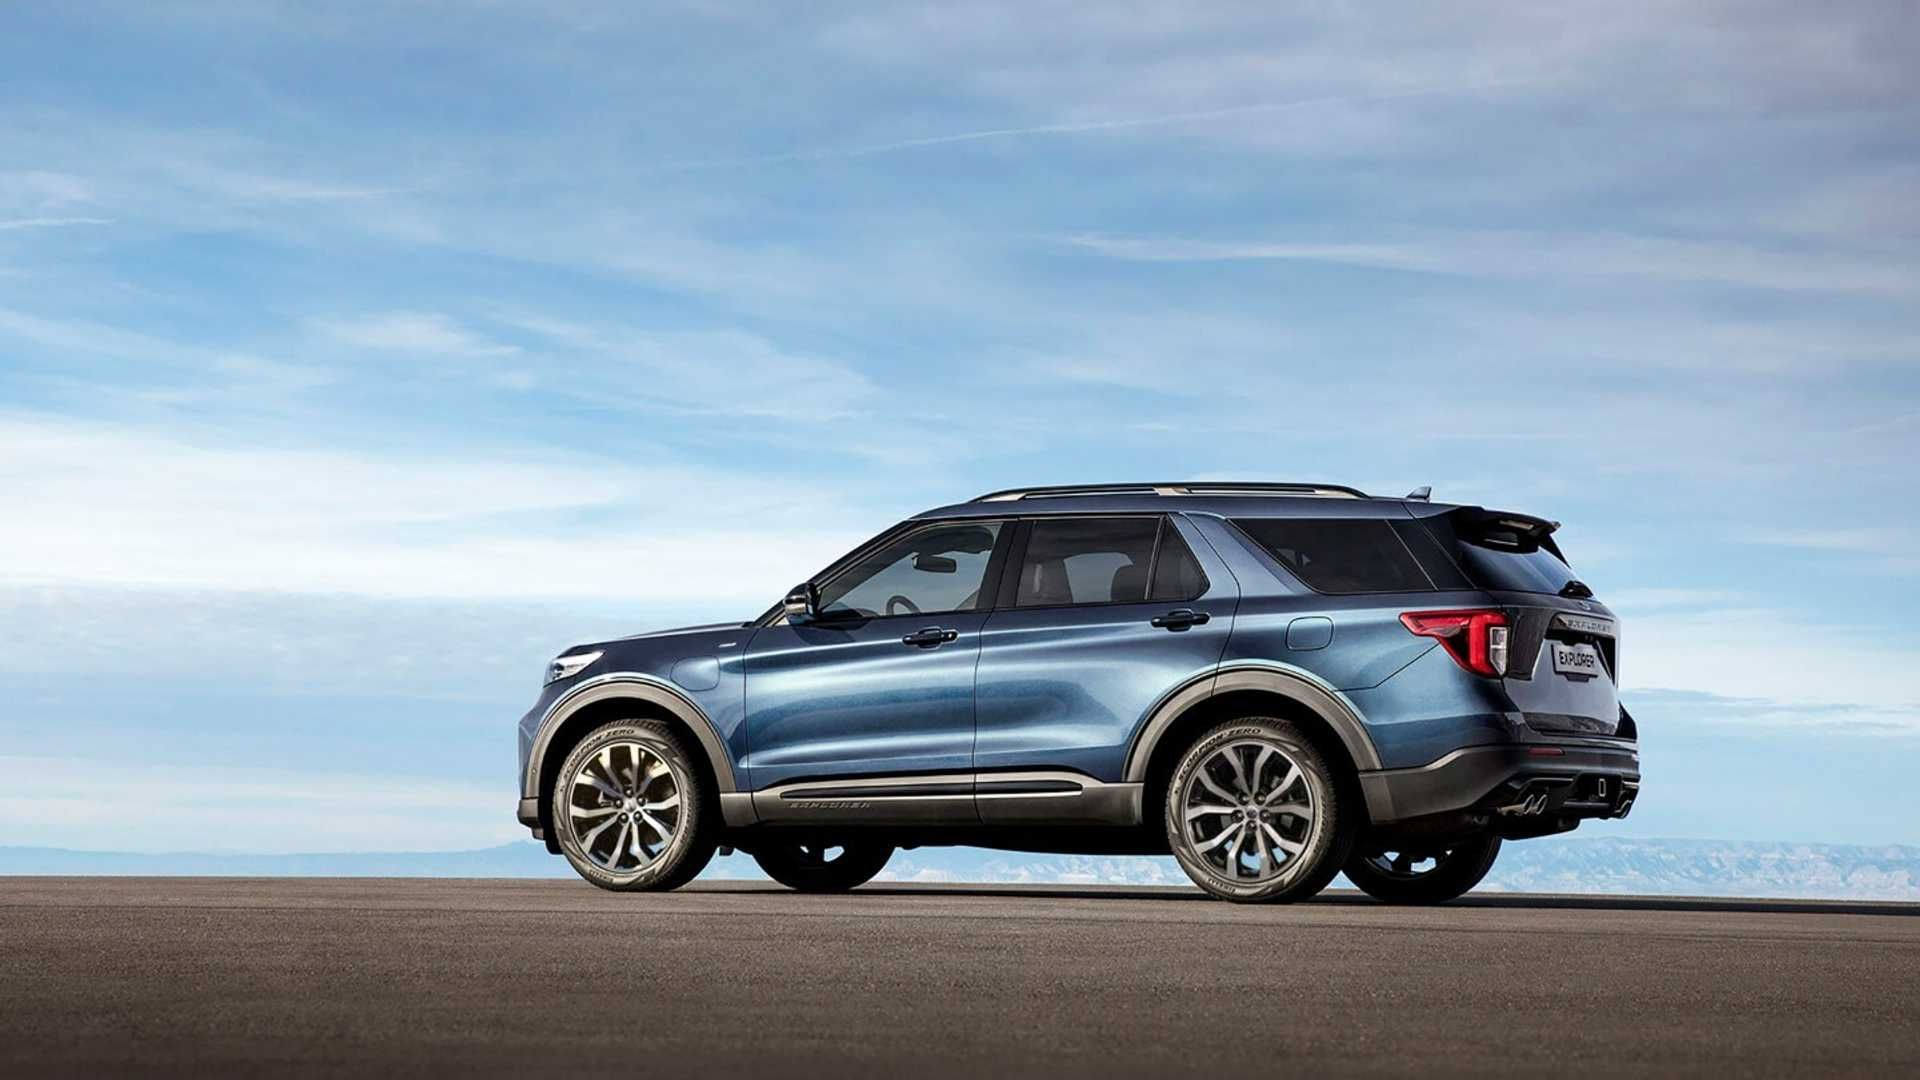 Ford Launches 7 Seat Explorer Phev With 26 Mile Wltp Ev Range In Europe In 2020 New Ford Explorer Plug In Hybrid Suv Ford Explorer